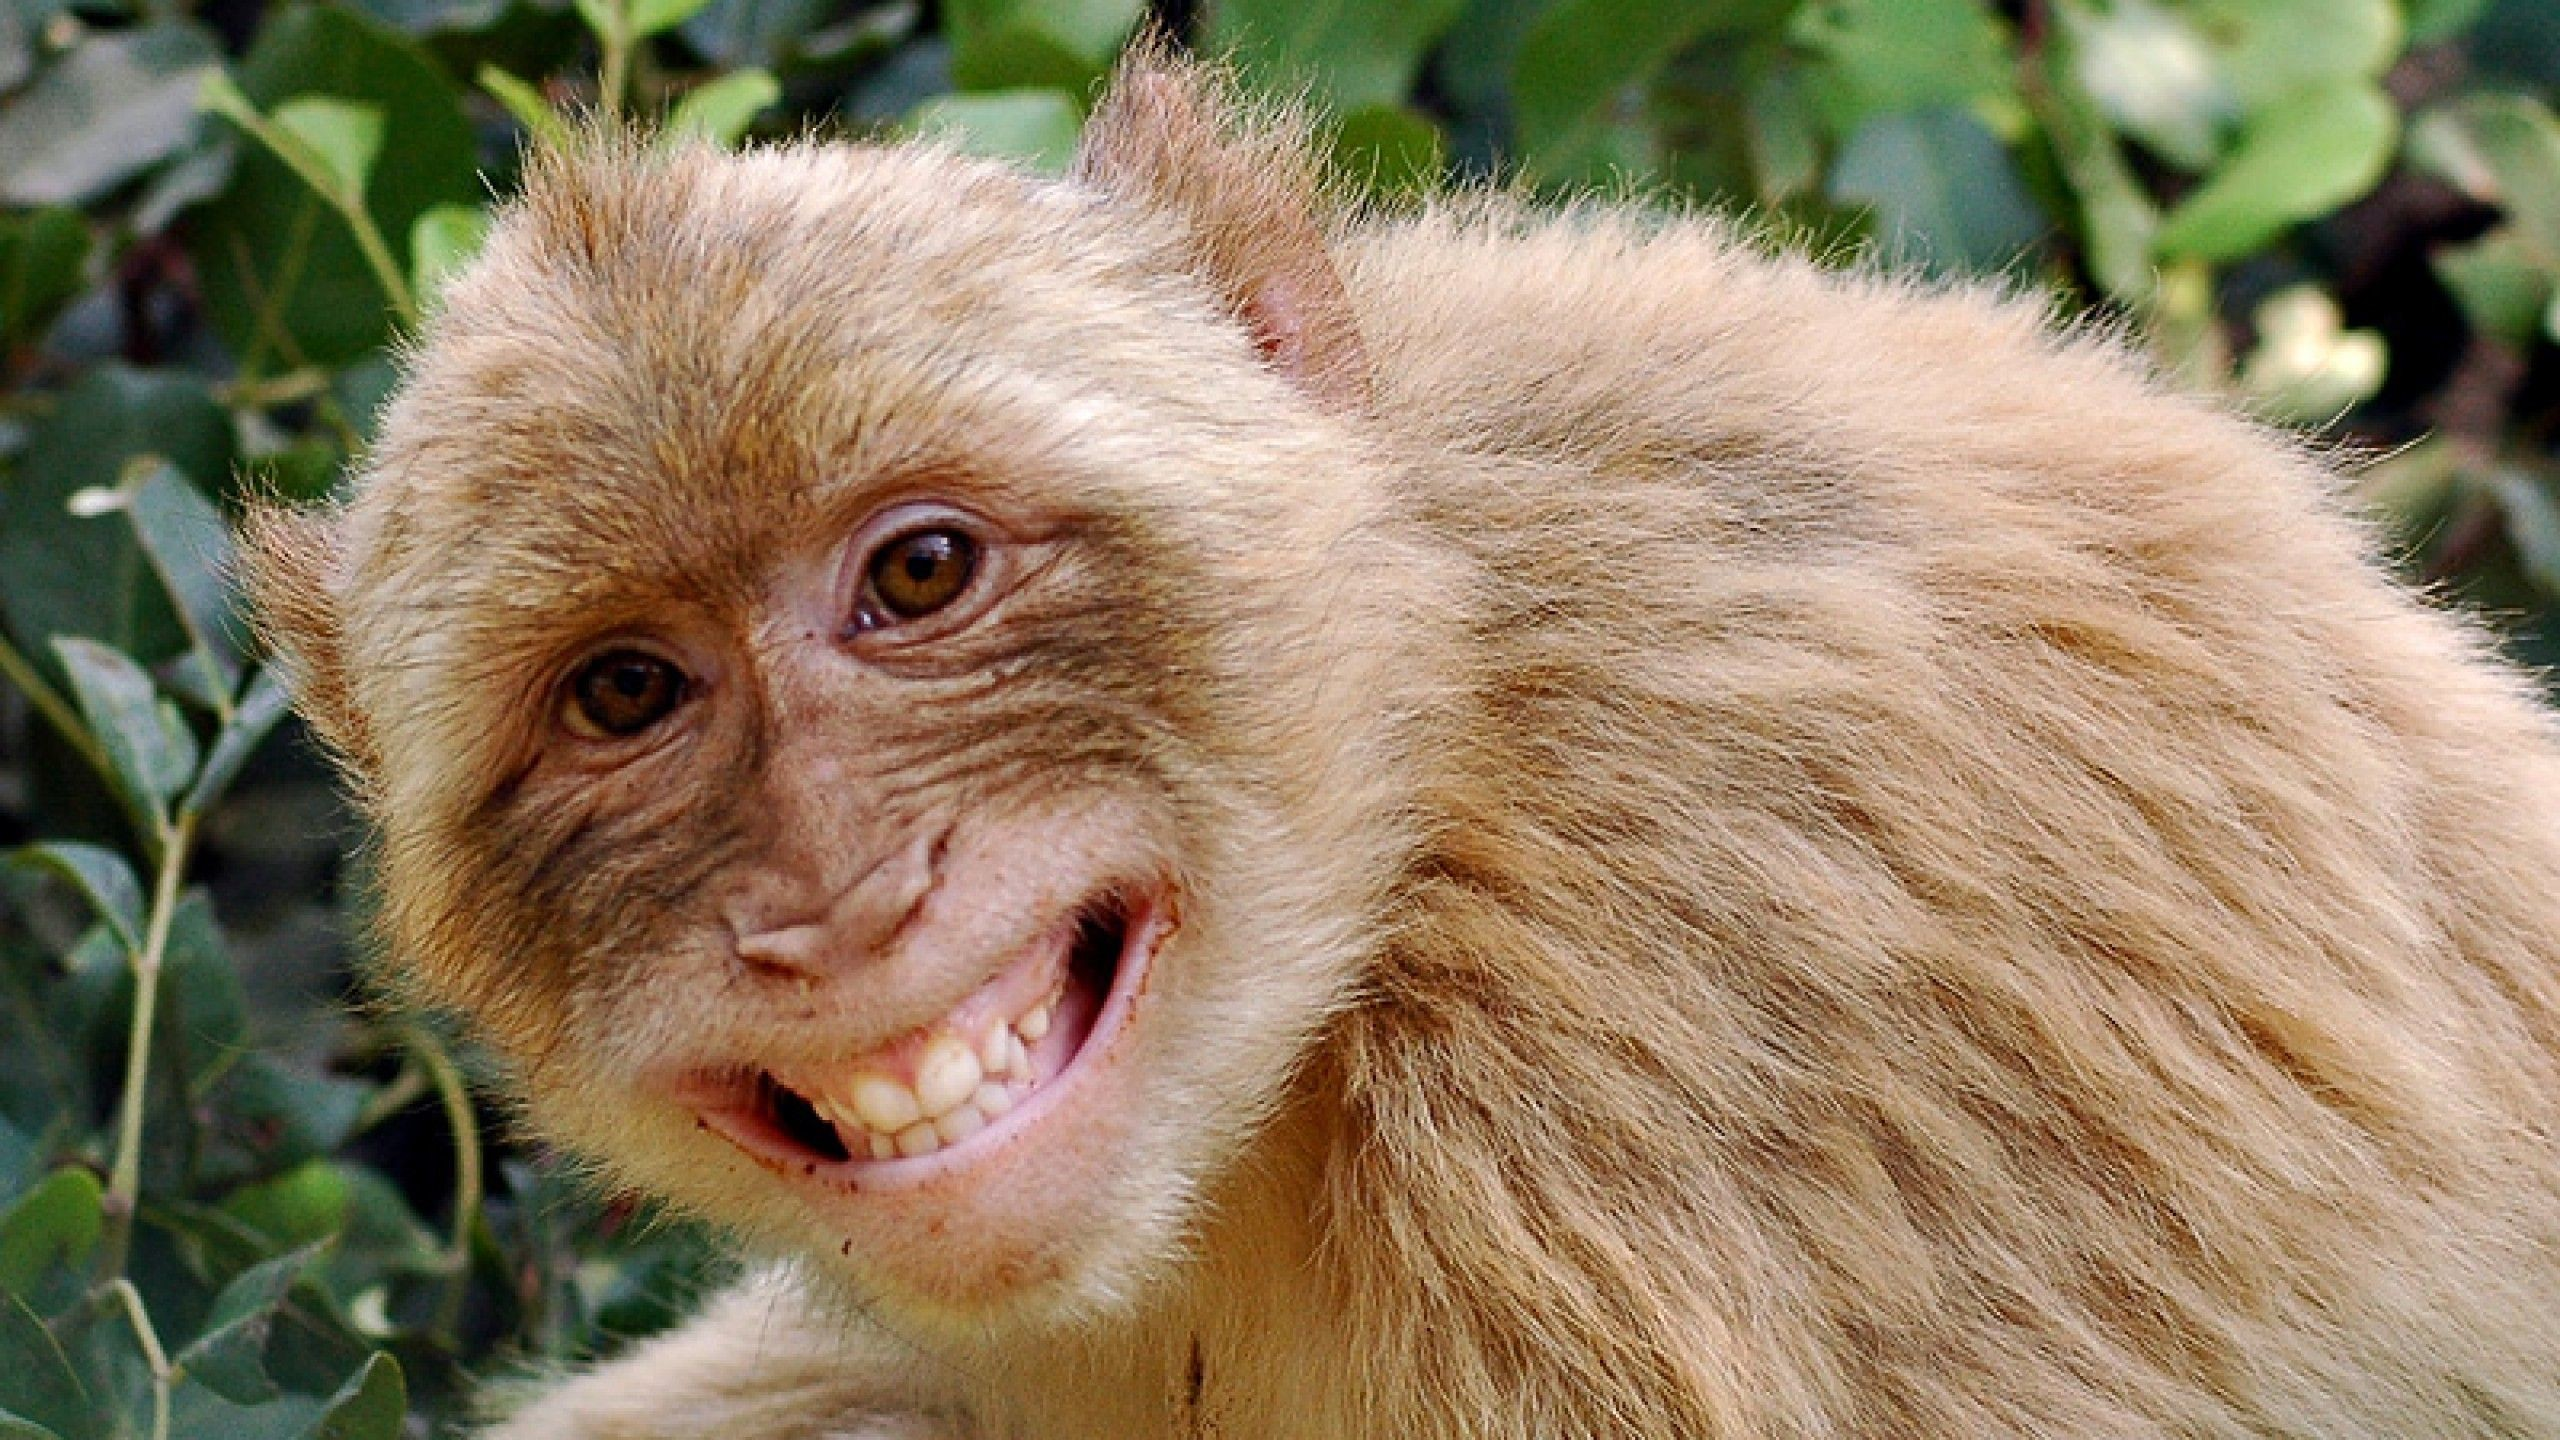 Funny Monkey Pictures Wallpaper Wallpaper Download MONKEY | HD Wallpapers |  Pinterest | Monkey wallpaper, Hd wallpaper and Wallpaper